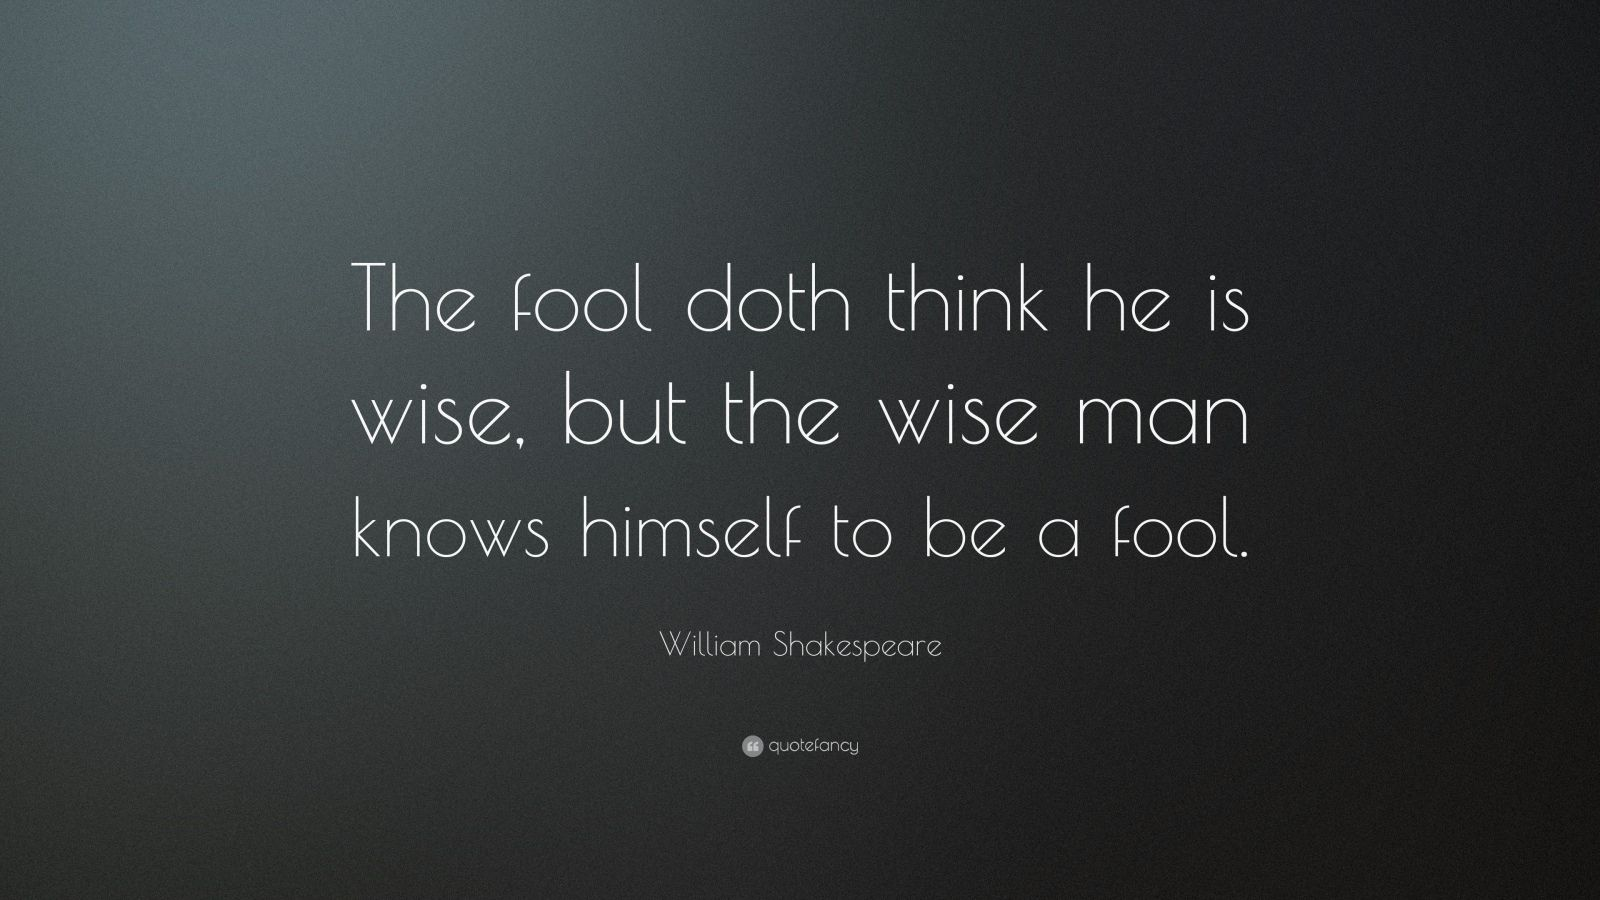 Socrates Wallpaper Quotes William Shakespeare Quotes 13 Wallpapers Quotefancy